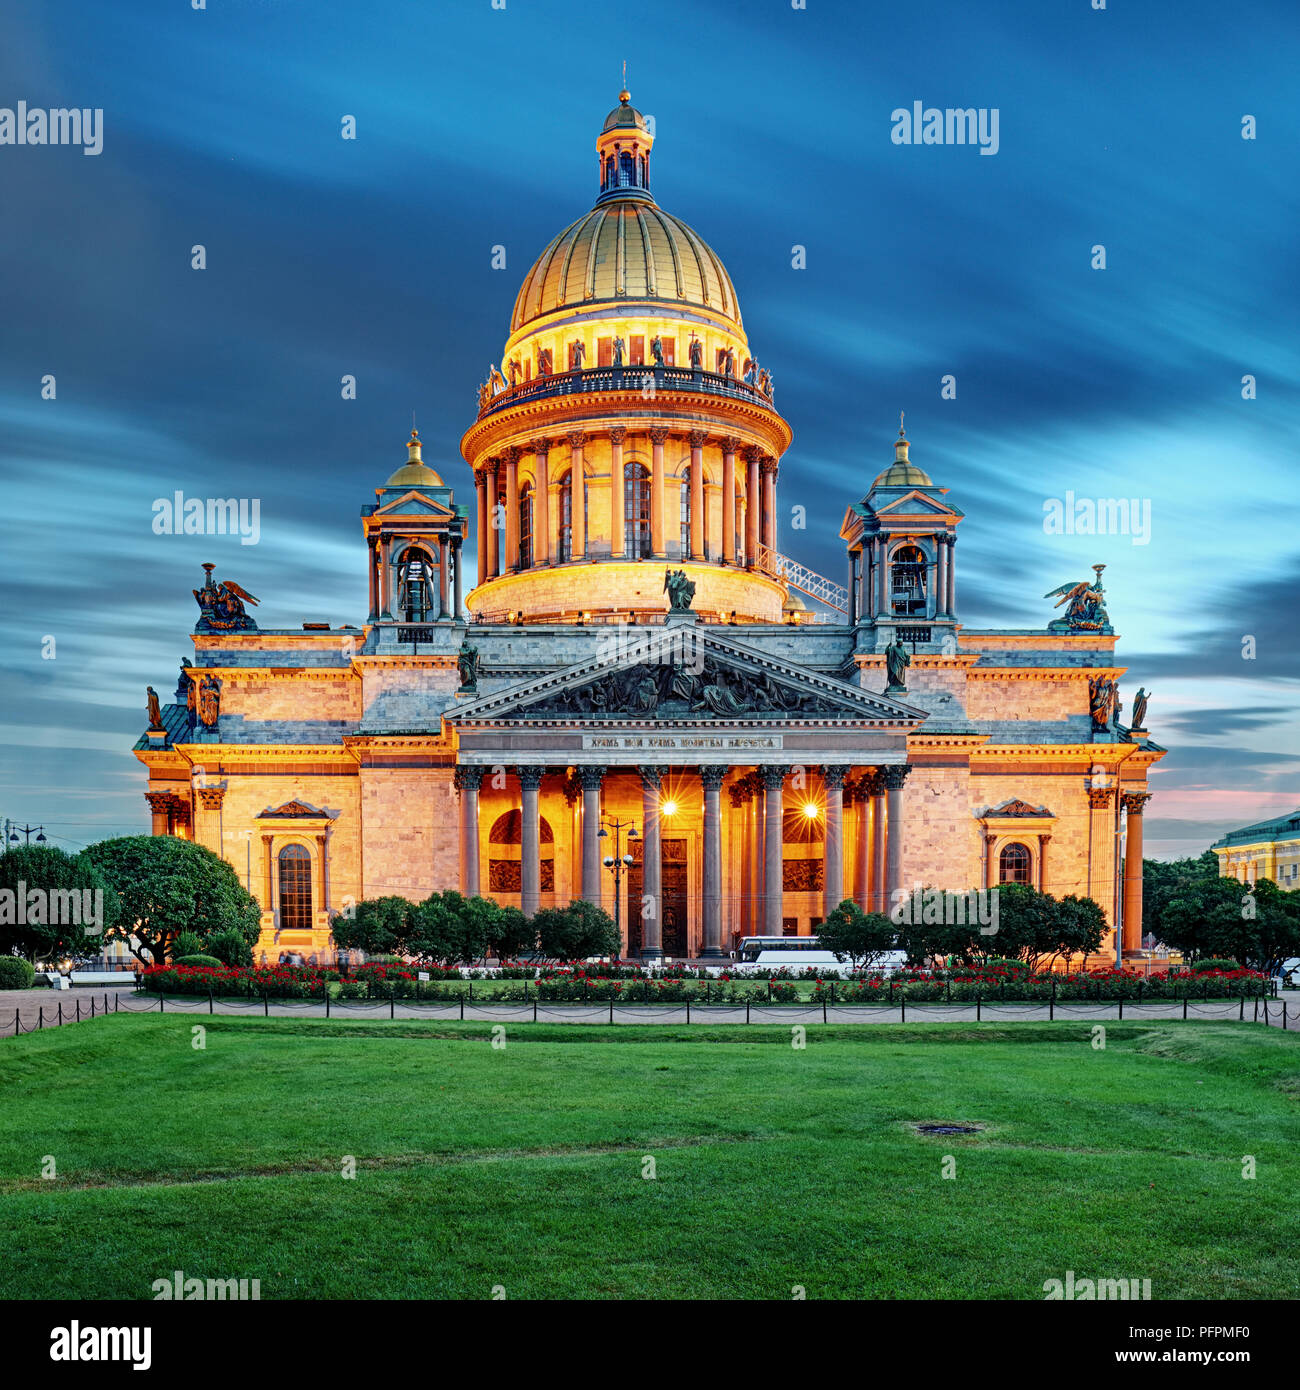 Isaac cathedral in St Petersburg at night, Russia. - Stock Image